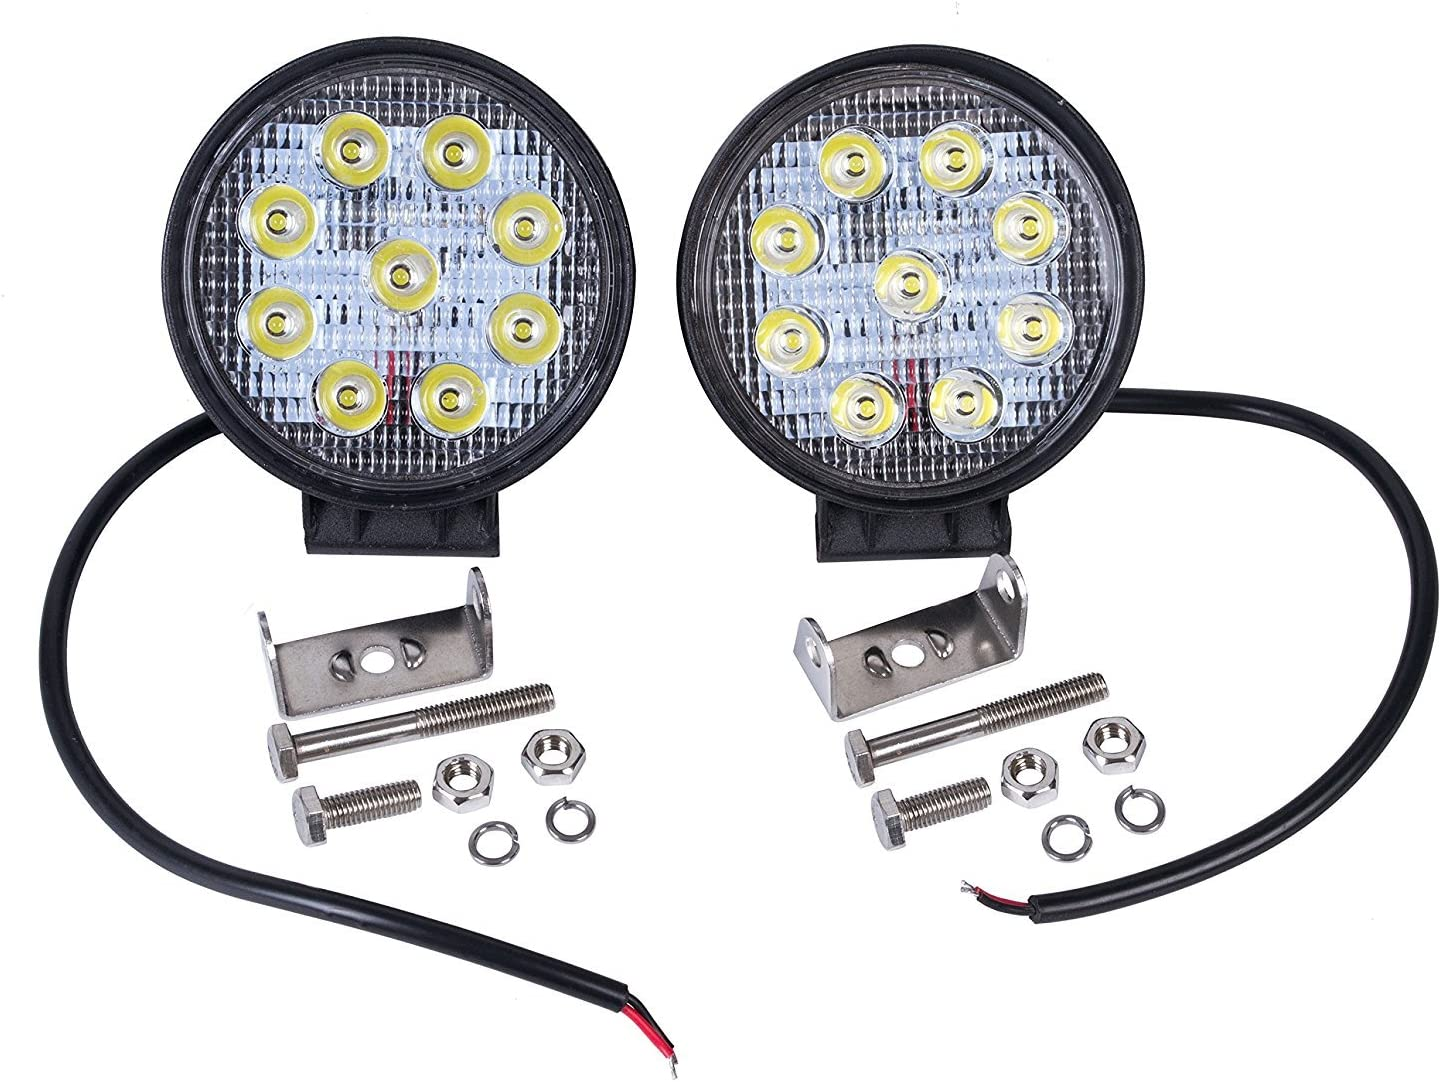 LED Headlamp 27/ W 1980 LM 10-30/ V DC LED Waterproof IP67/ Car Headlight Job Site Lighting Reversing Light